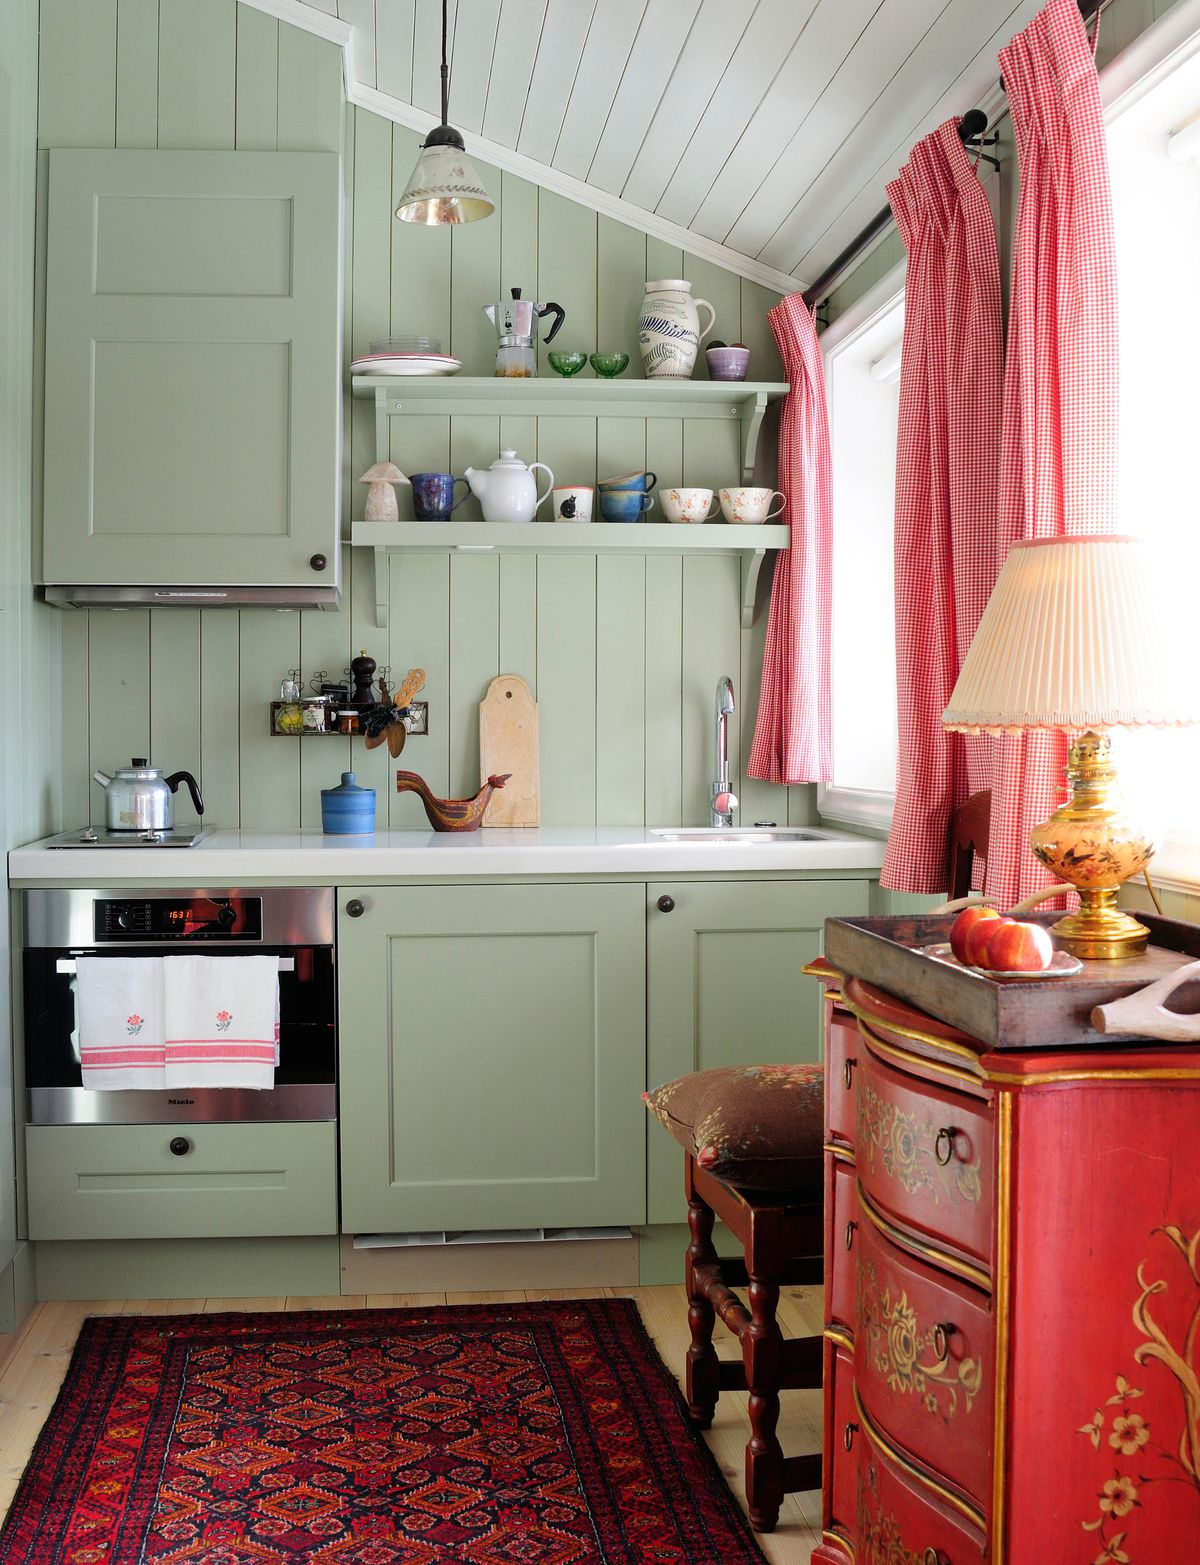 Green kitchen with red furniture and curatins.